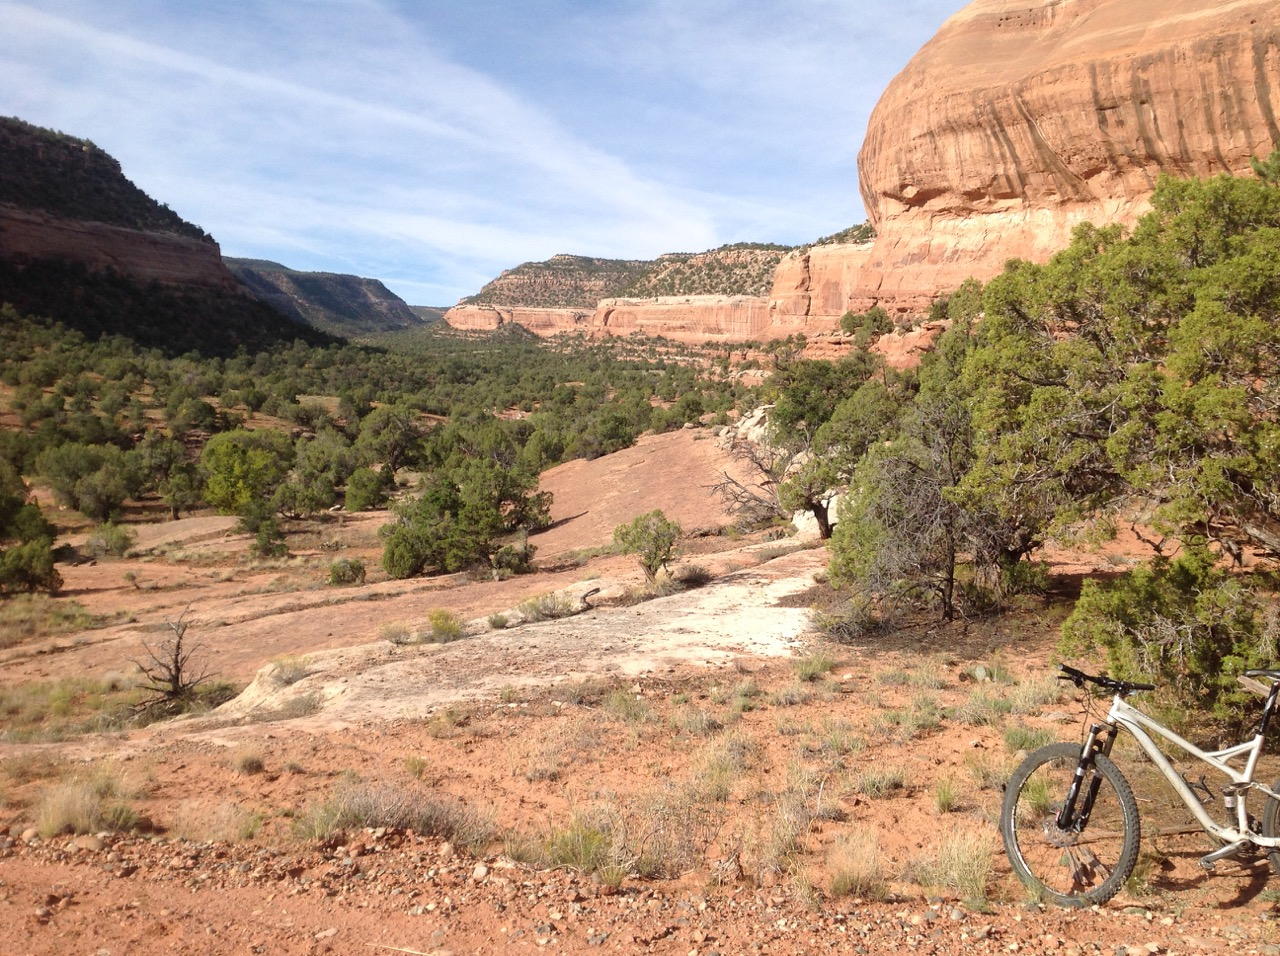 At the entrance to Red Canyon. The trail climbs about 5 miles into the canyon following old two-track.